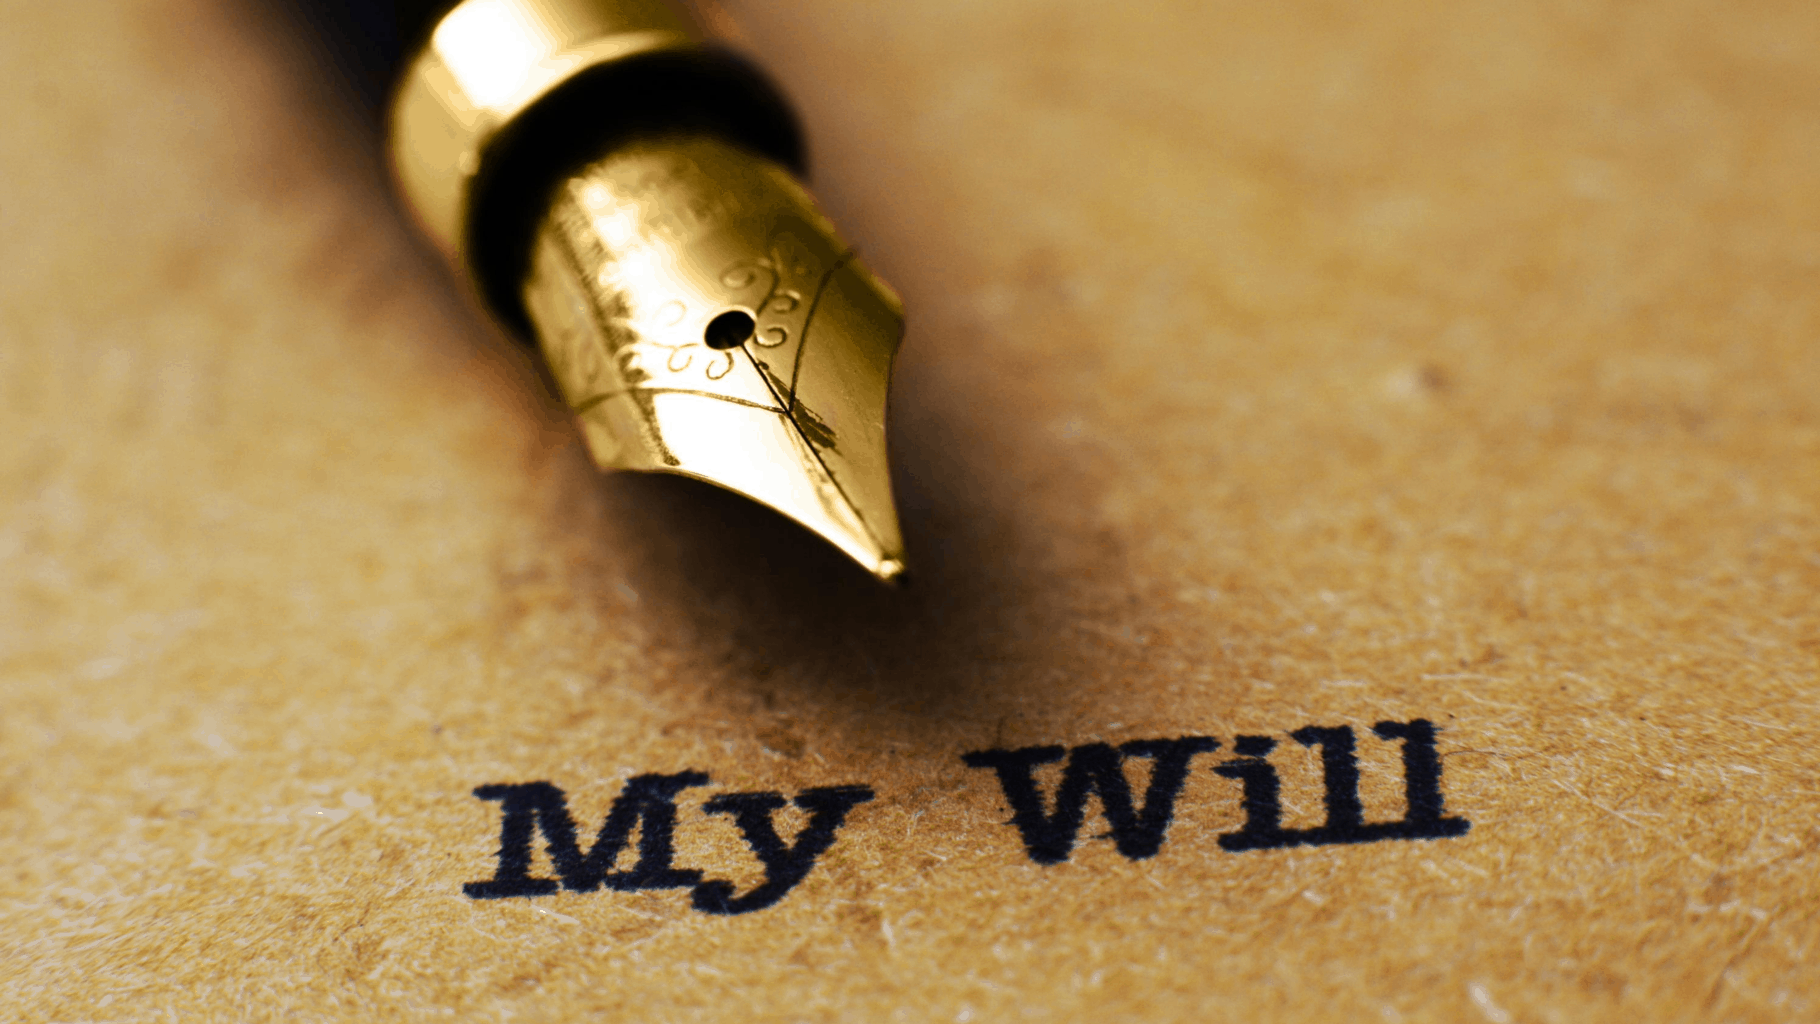 UK Wills: Is Your Will Up To Date?